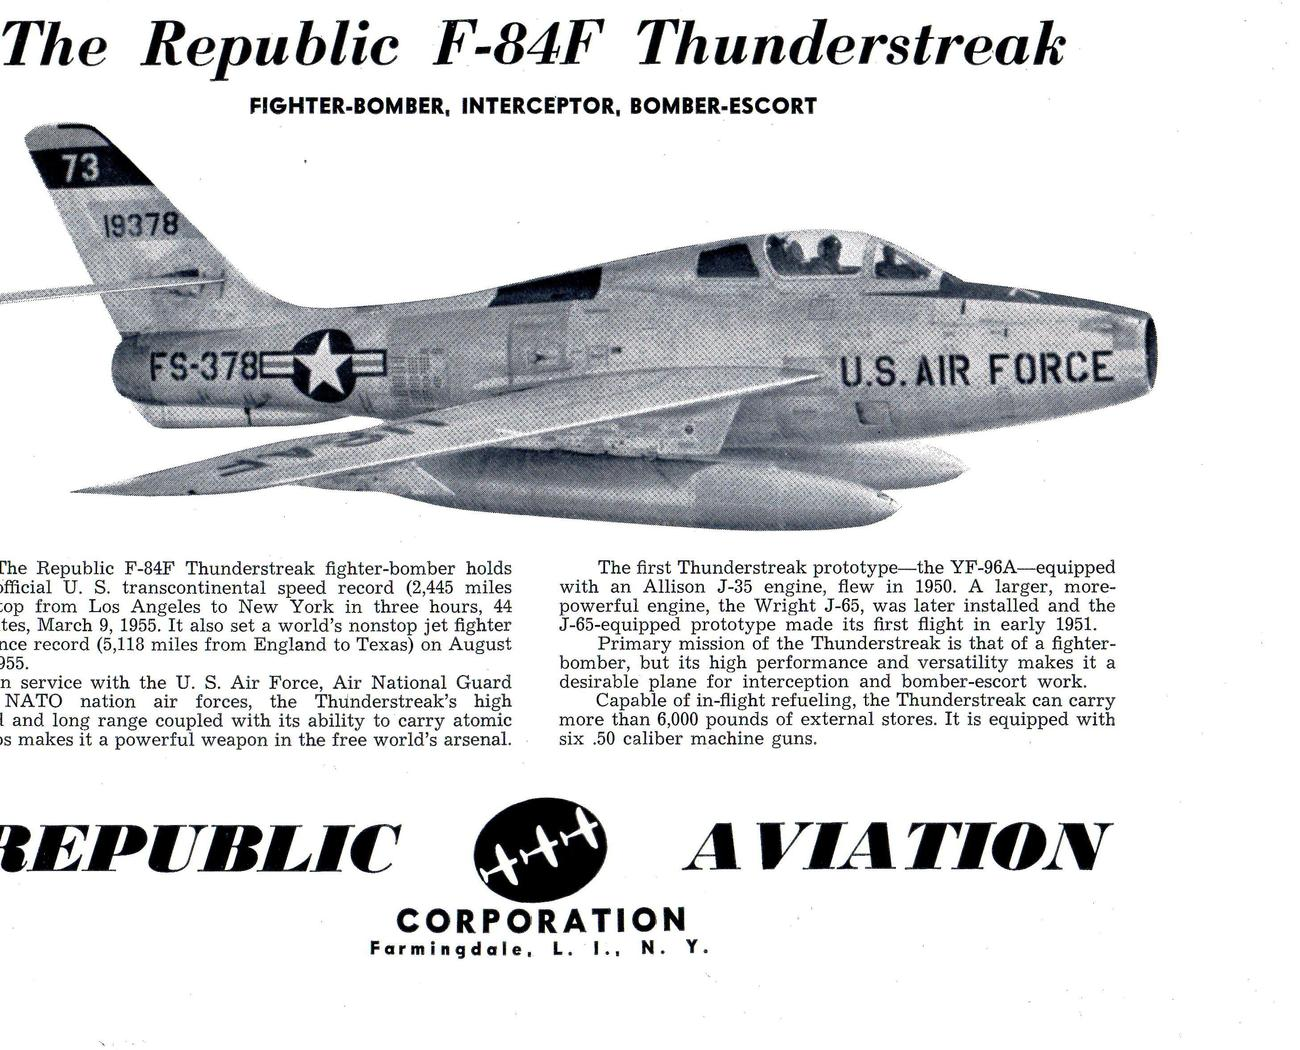 Republic F-84F Thunderstreak- Republic Aviation, Farmingdale, L.I. , N.Y.